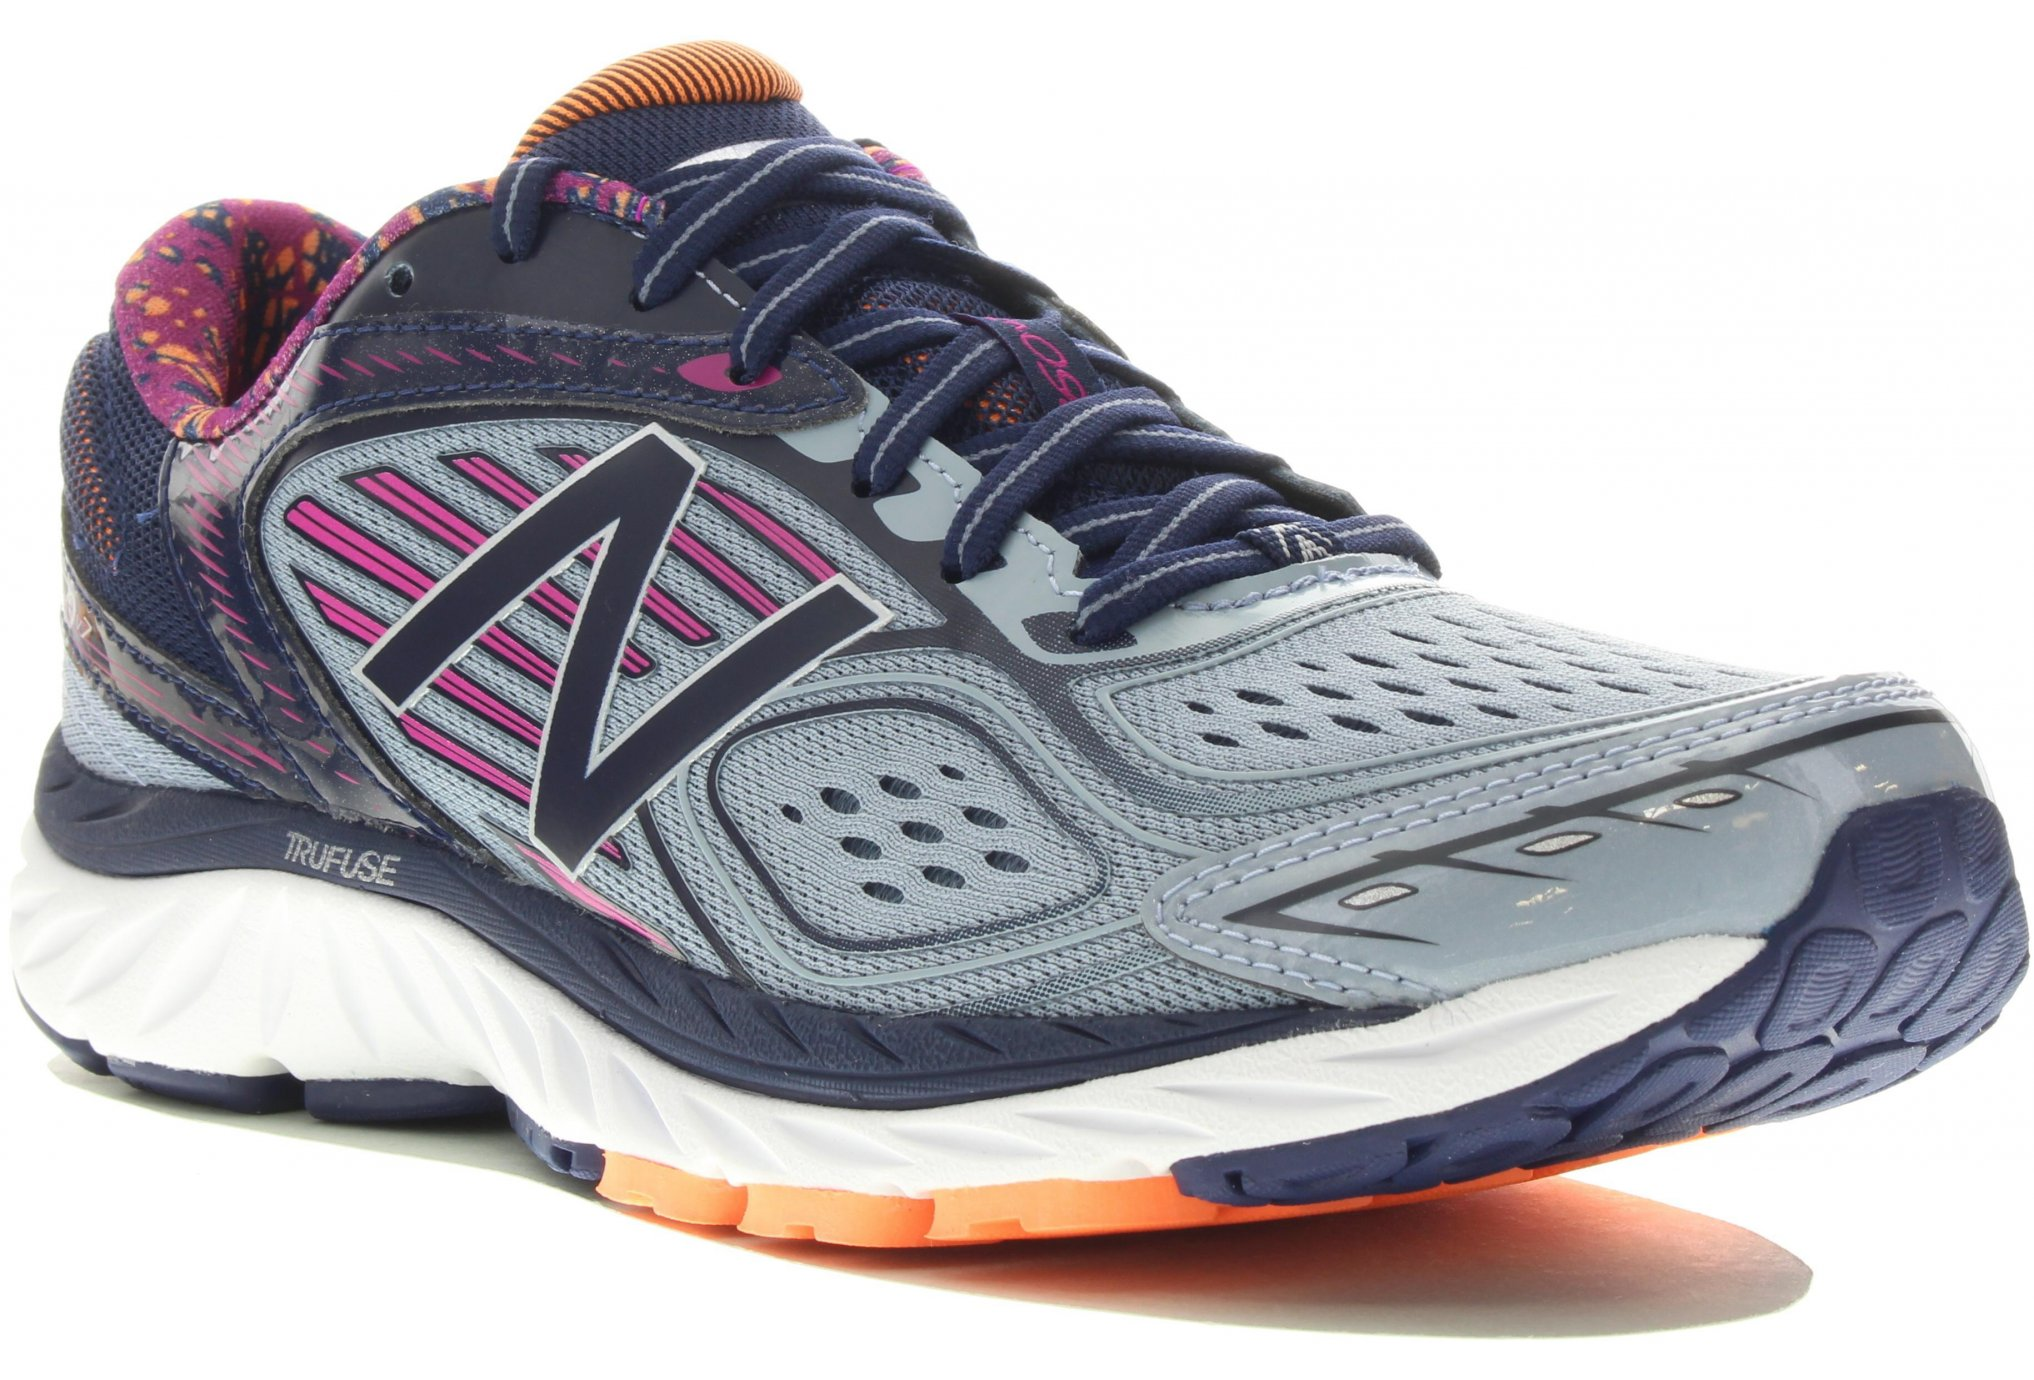 New Balance W 860 V7 - B déstockage running